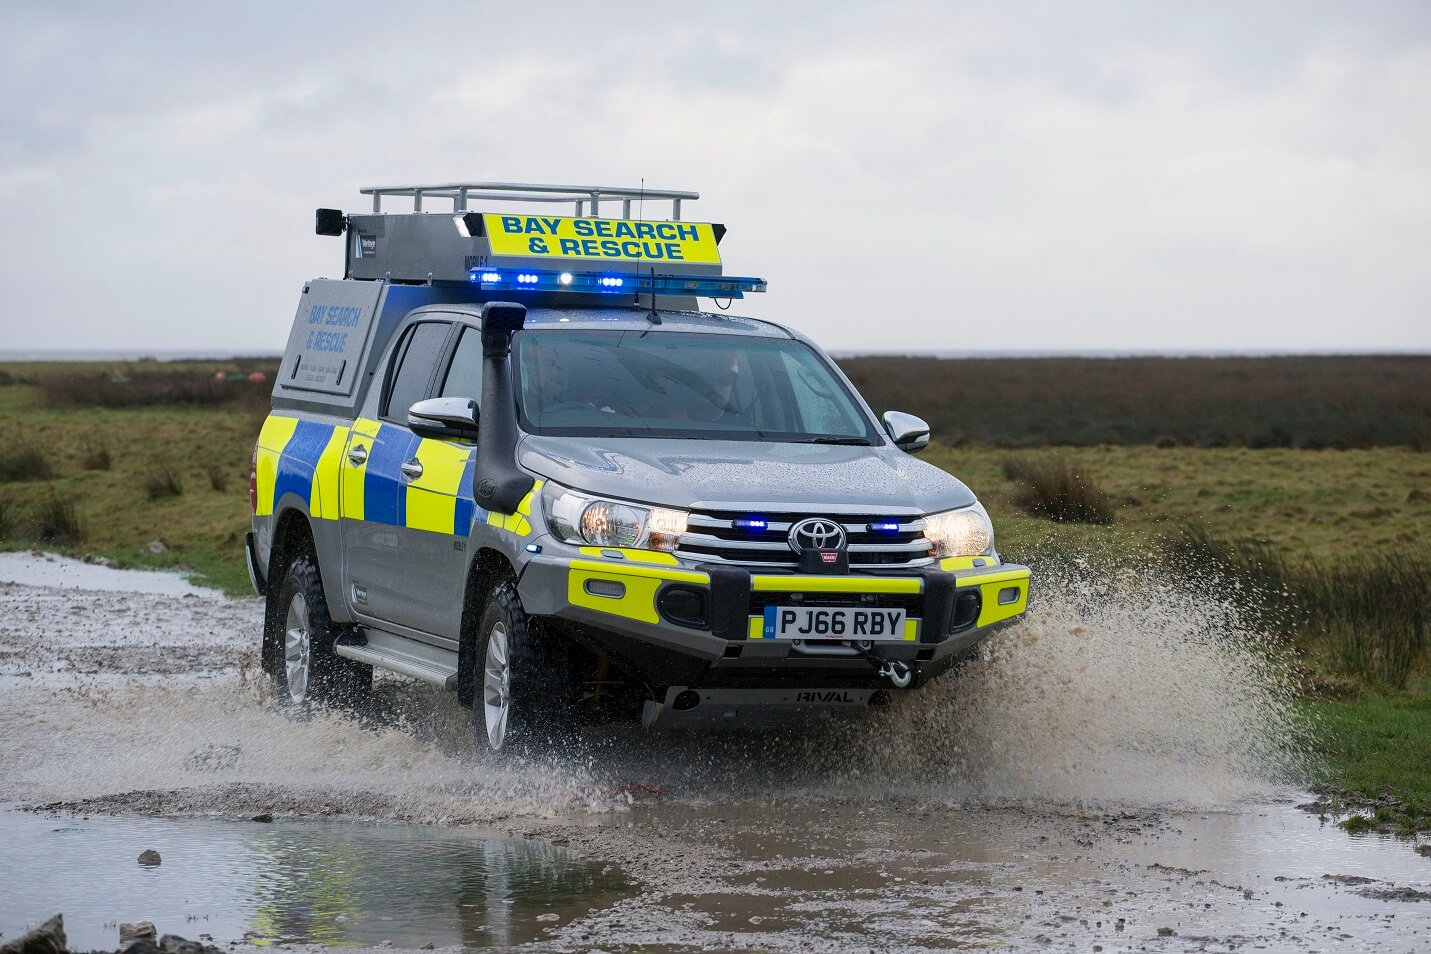 Used Cars For Sale Bay Area >> Toyota Morecambe puts the wheels in motion for Bay Search & Rescue | Vantage Toyota (Morecambe)